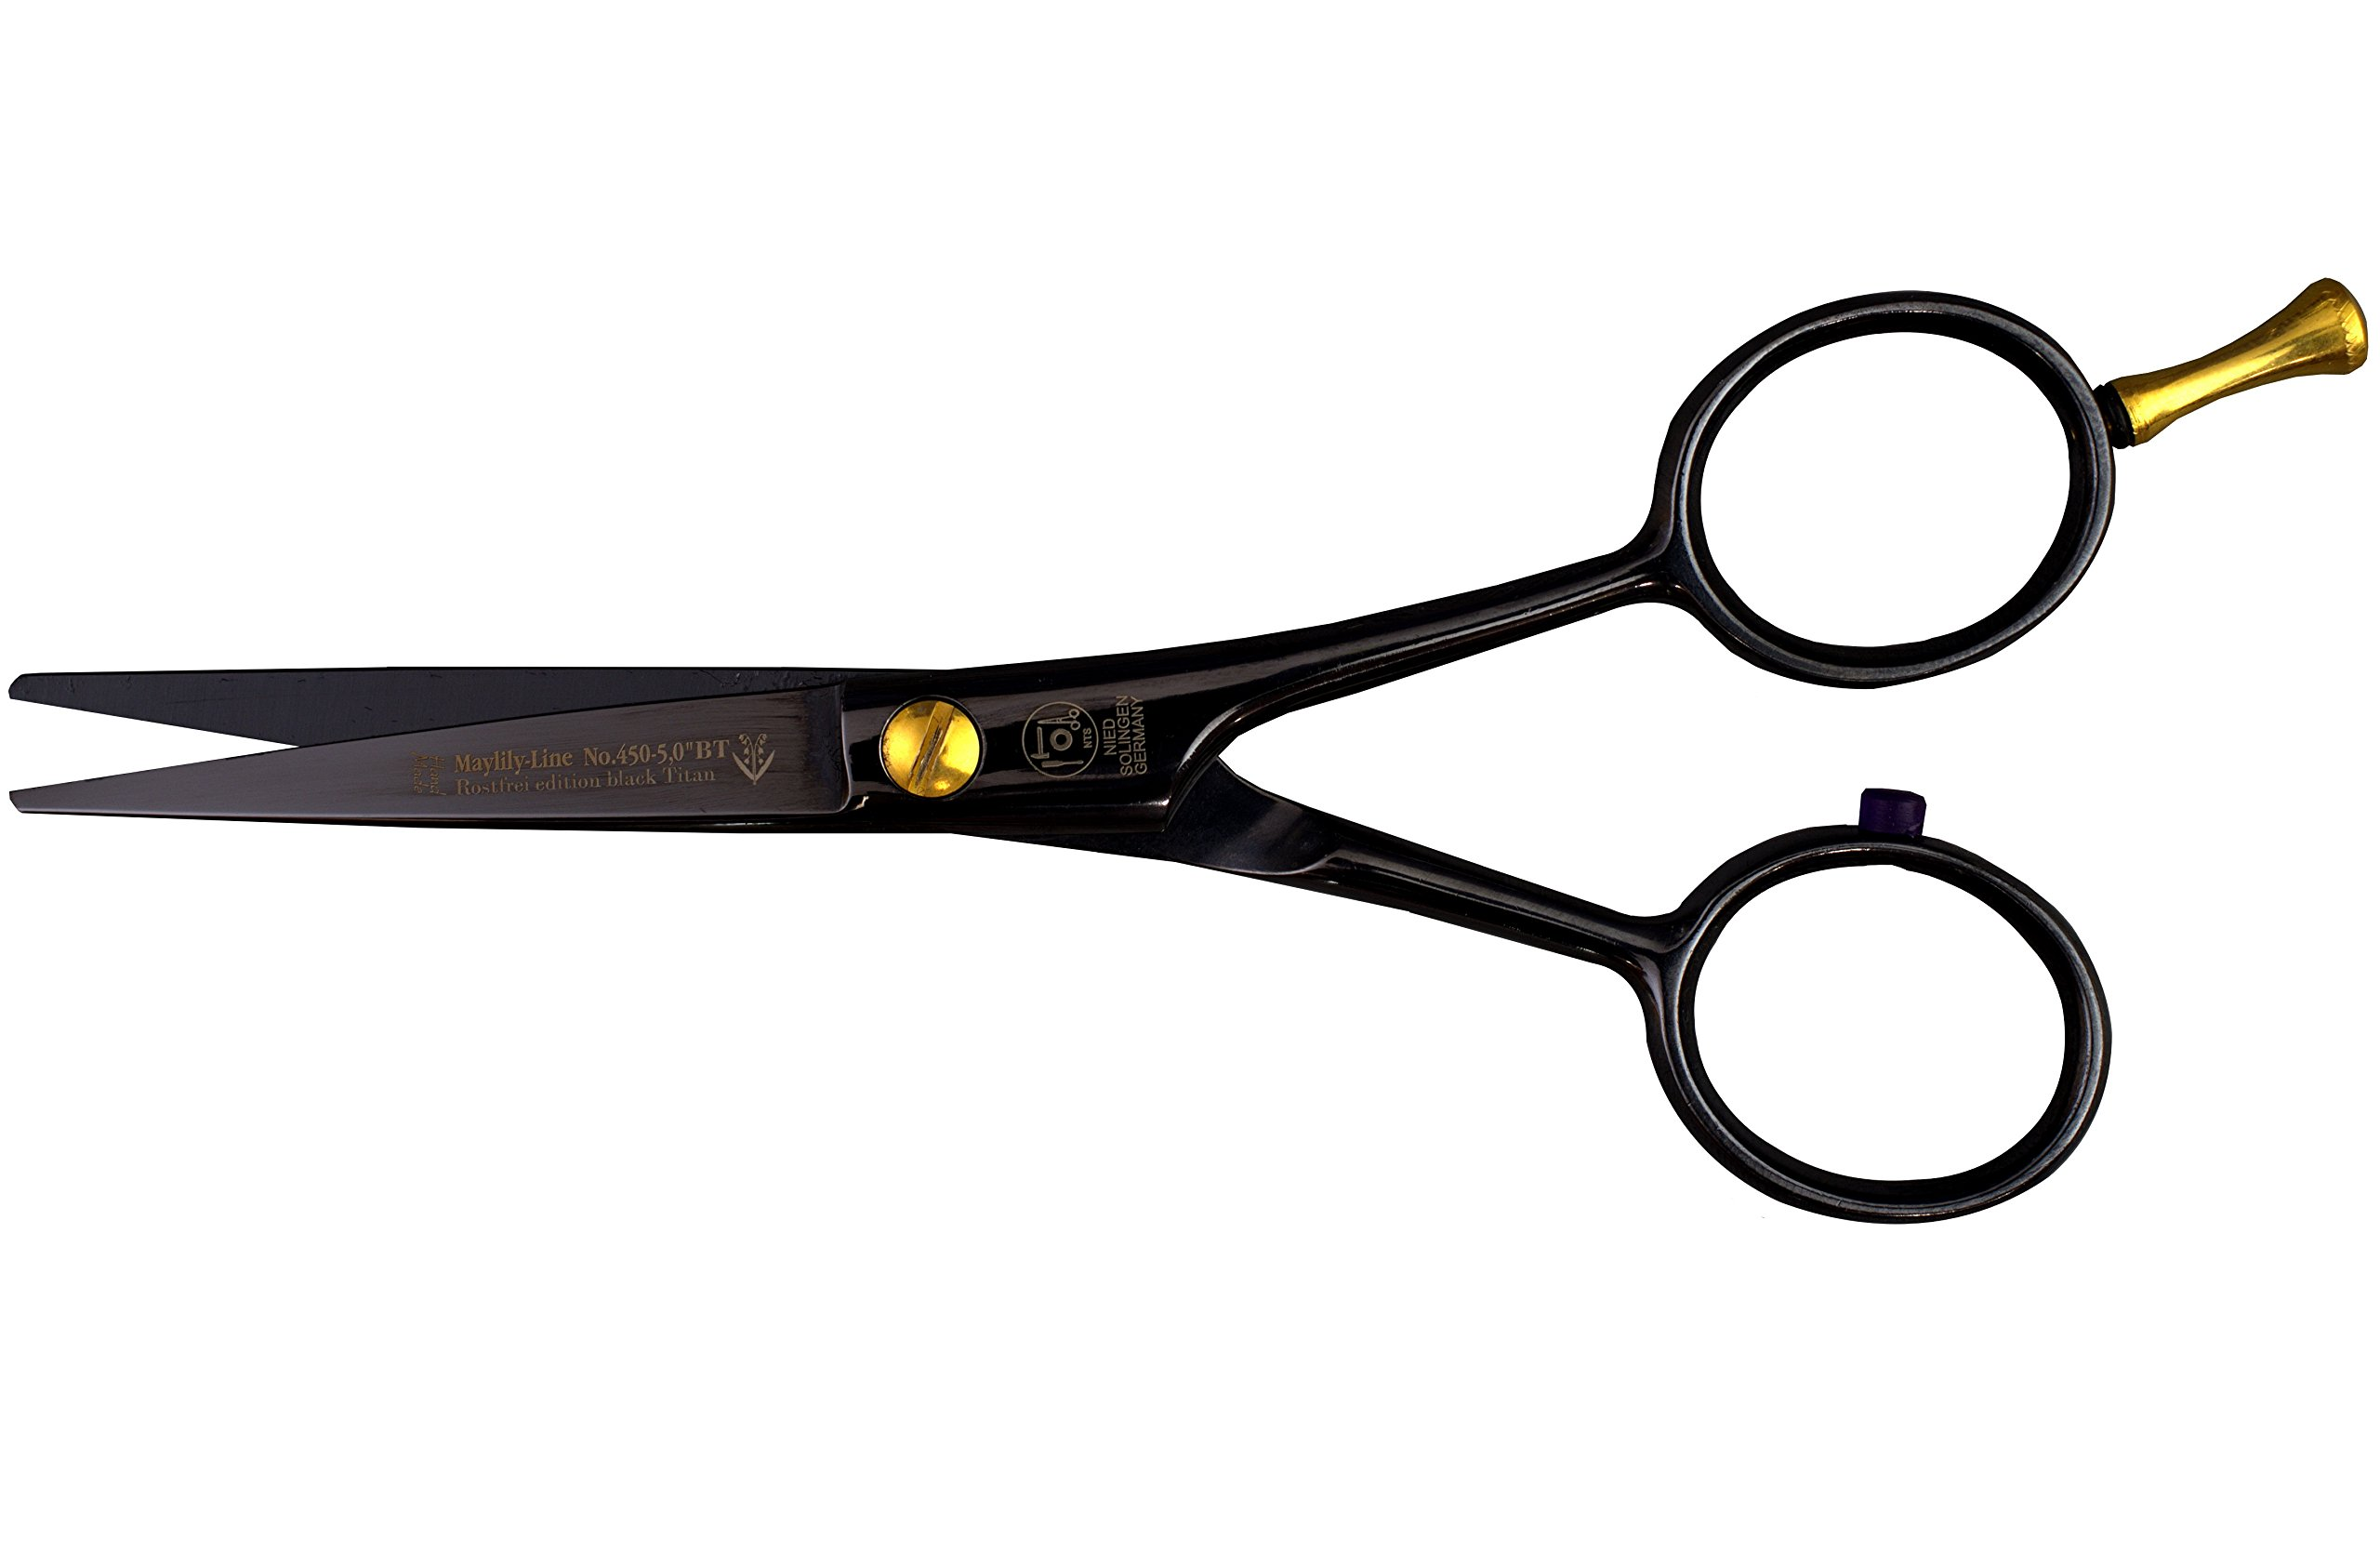 Maylily Titanium GERMANY Beard and Moustache Scissor, 5.125 Inches, Hollow Ground, Ice-Tempered Stainless Steel with Titanium Coating, Made in Solingen, Germany by NTS-Solingen